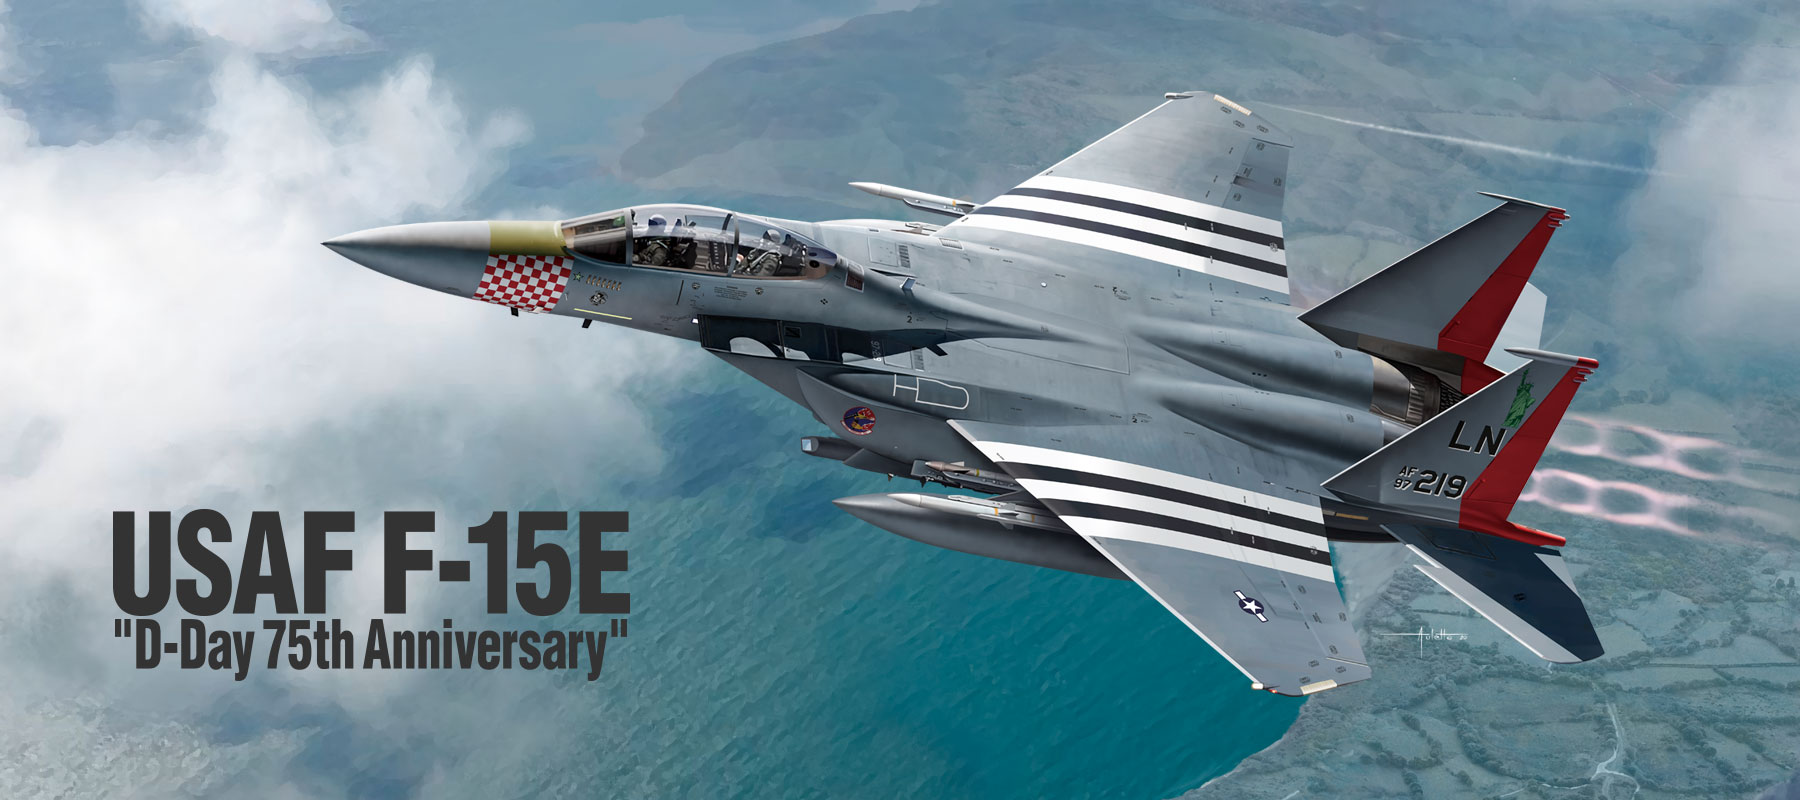 12568 USAF F-15E D-Day 75th Anniversary